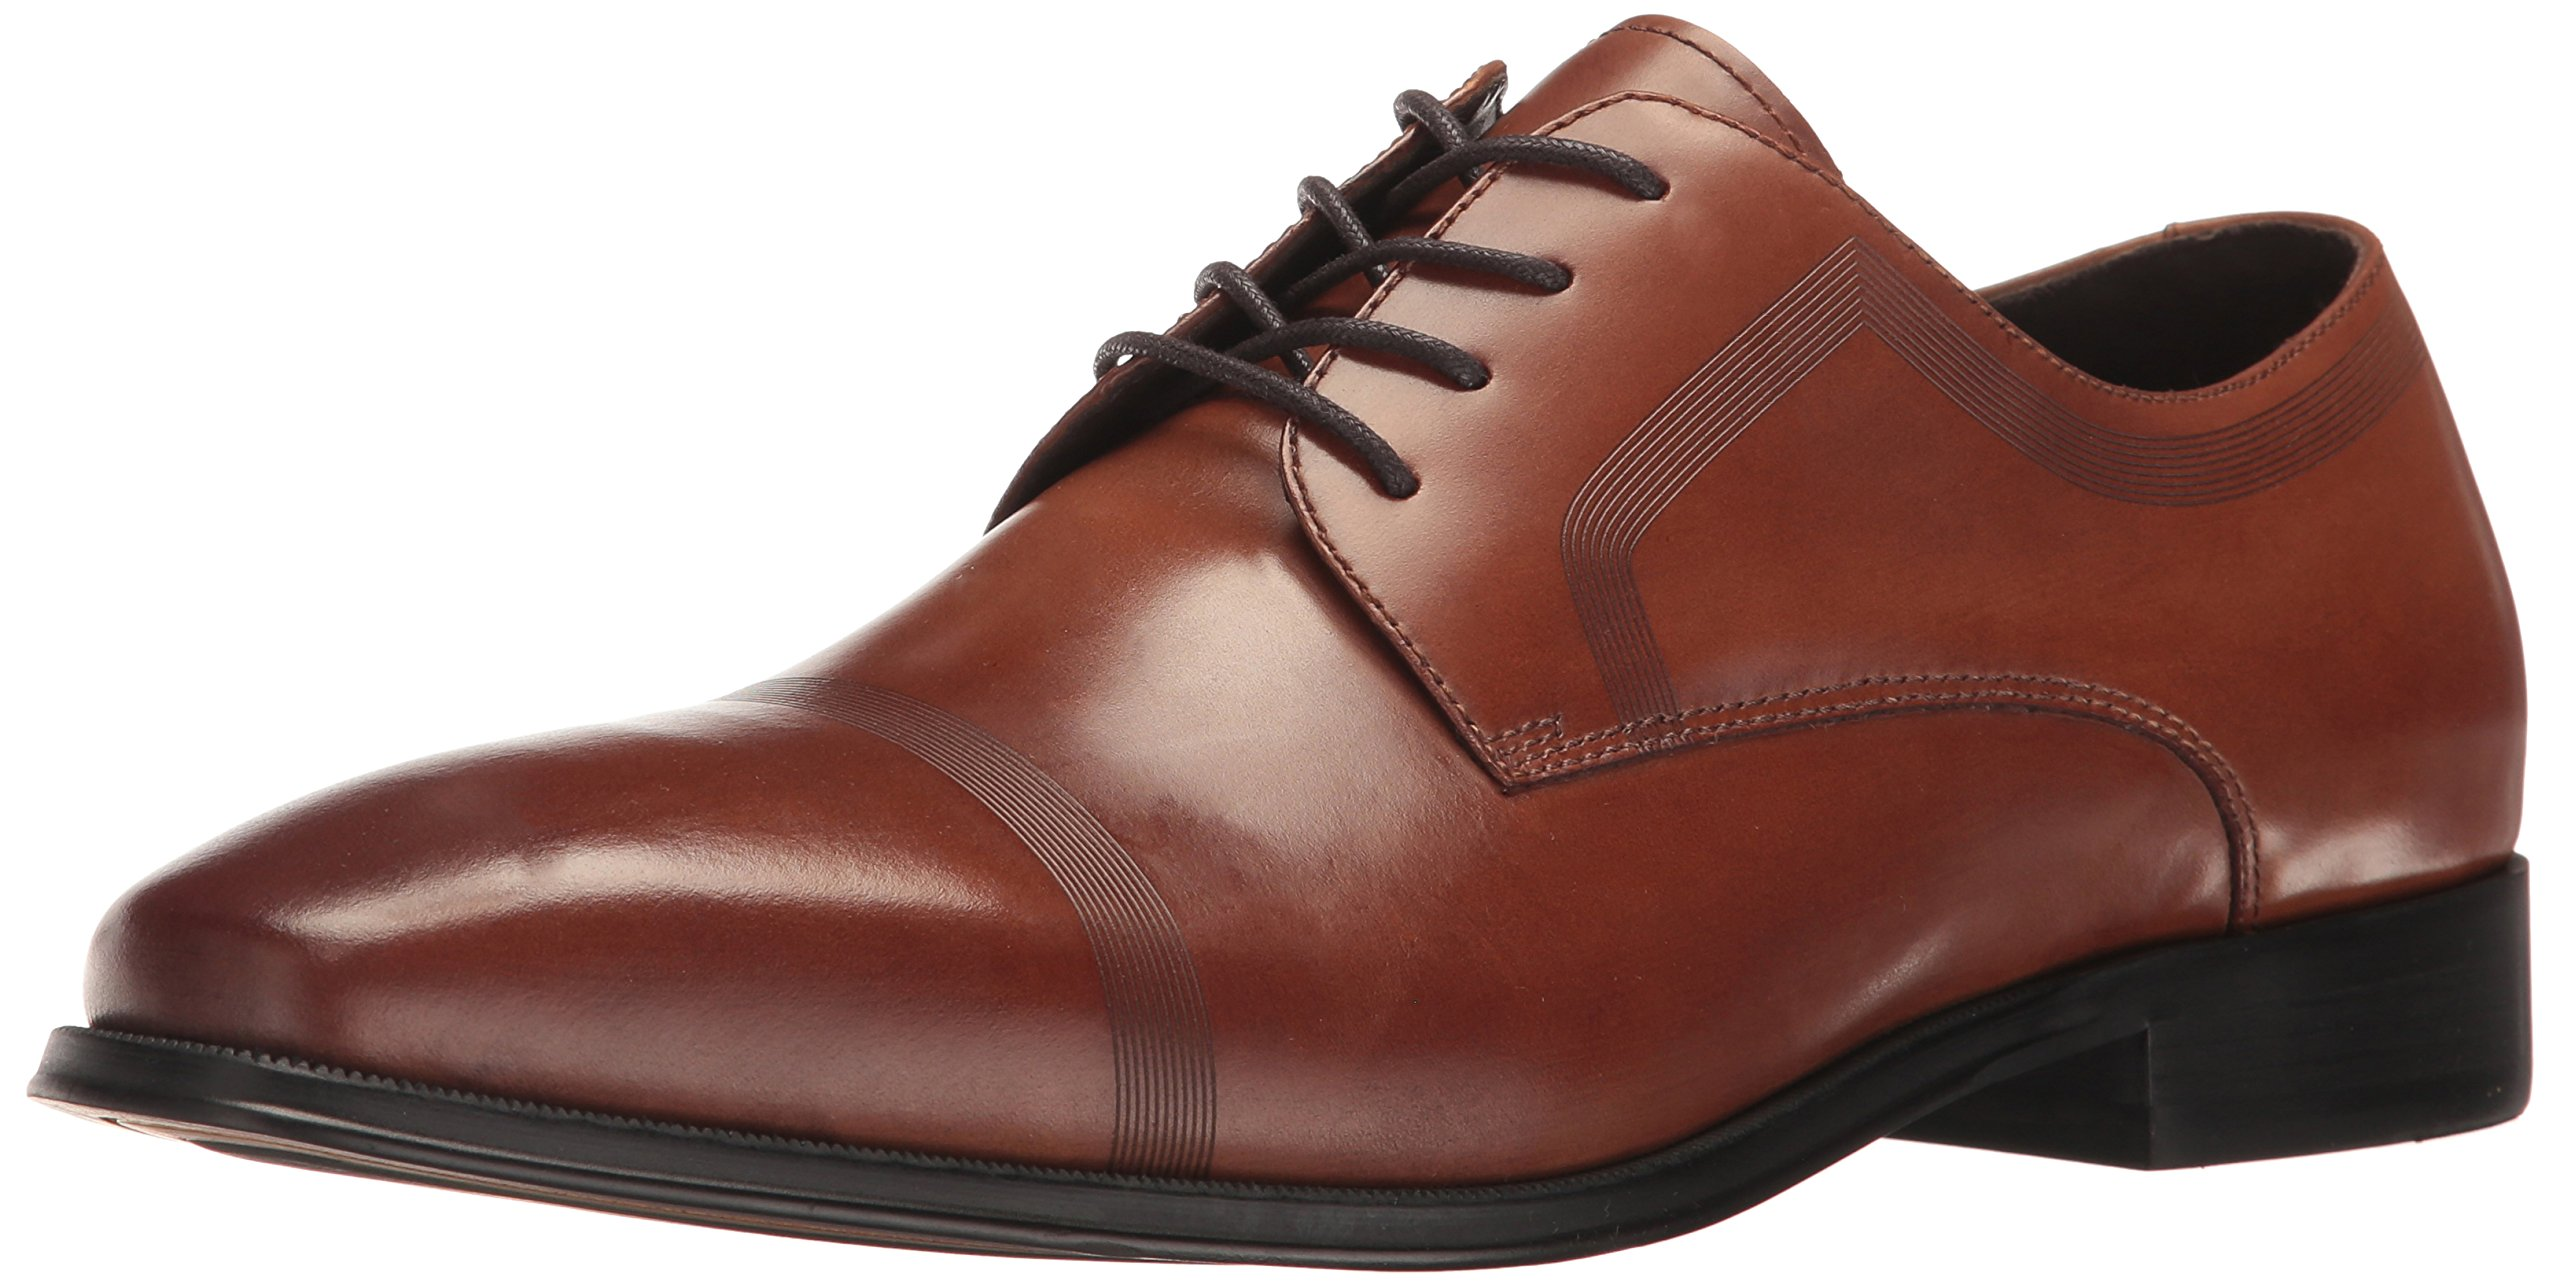 Kenneth Cole REACTION Men's Pure Hearted Oxford, Cognac, 10 M US